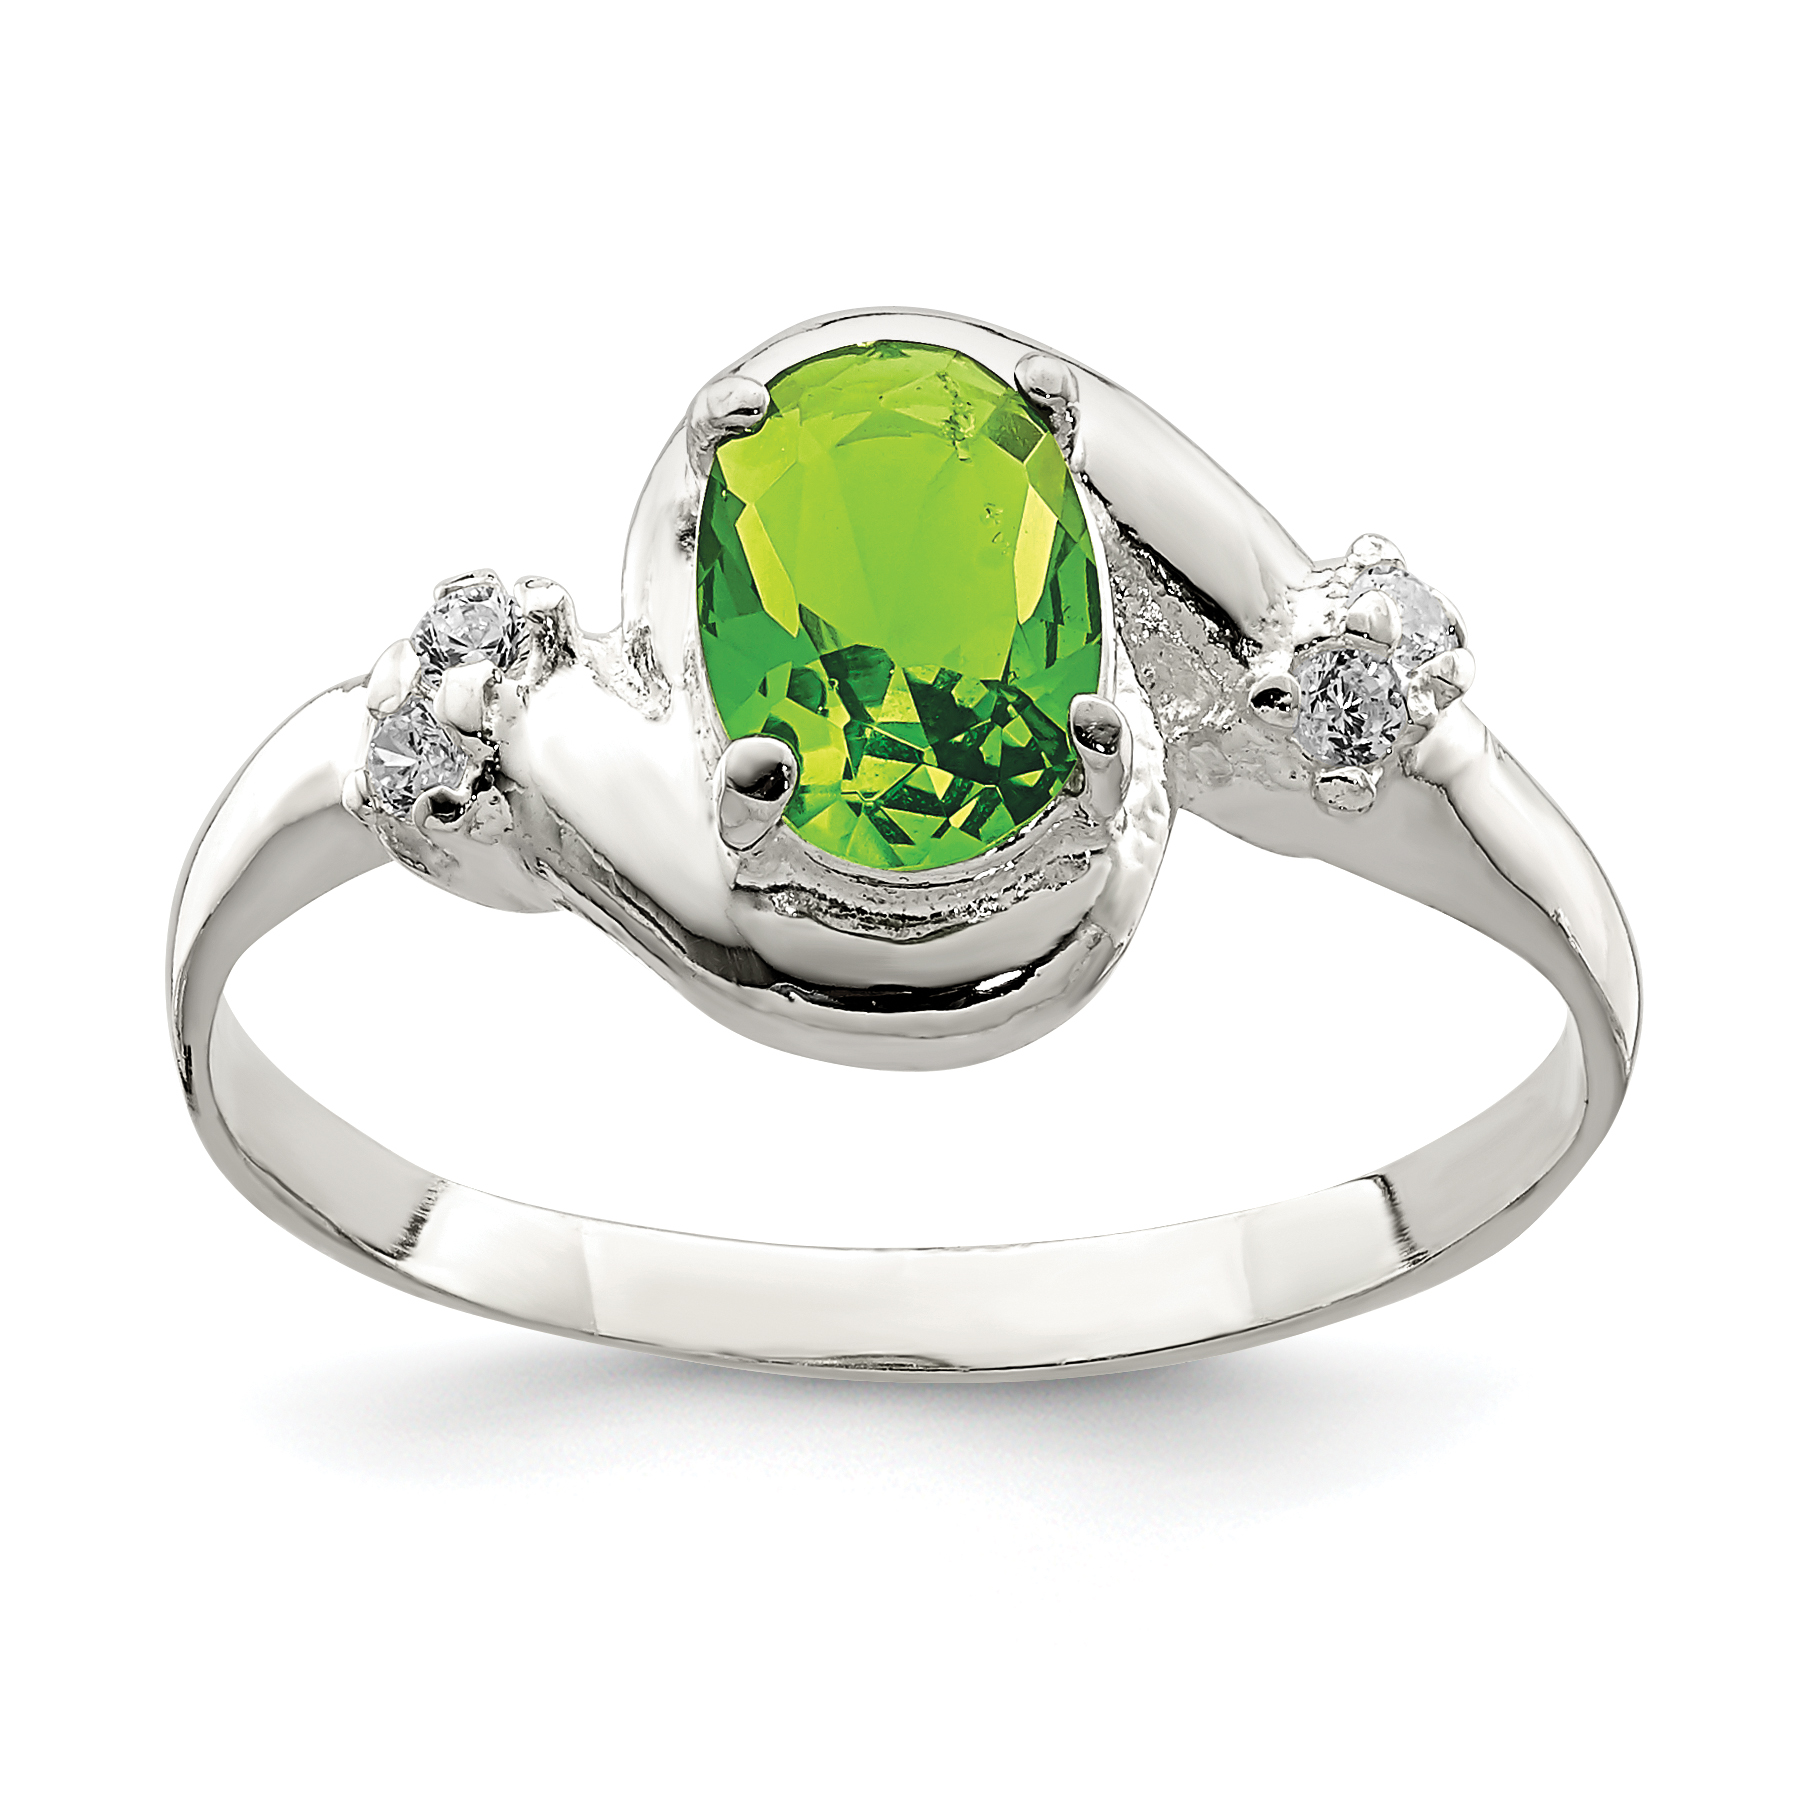 925 Sterling Silver Lime Green Oval Cubic Zirconia Cz Band Ring Size 6.00 Fine Jewelry Gifts For Women For Her - image 2 de 2